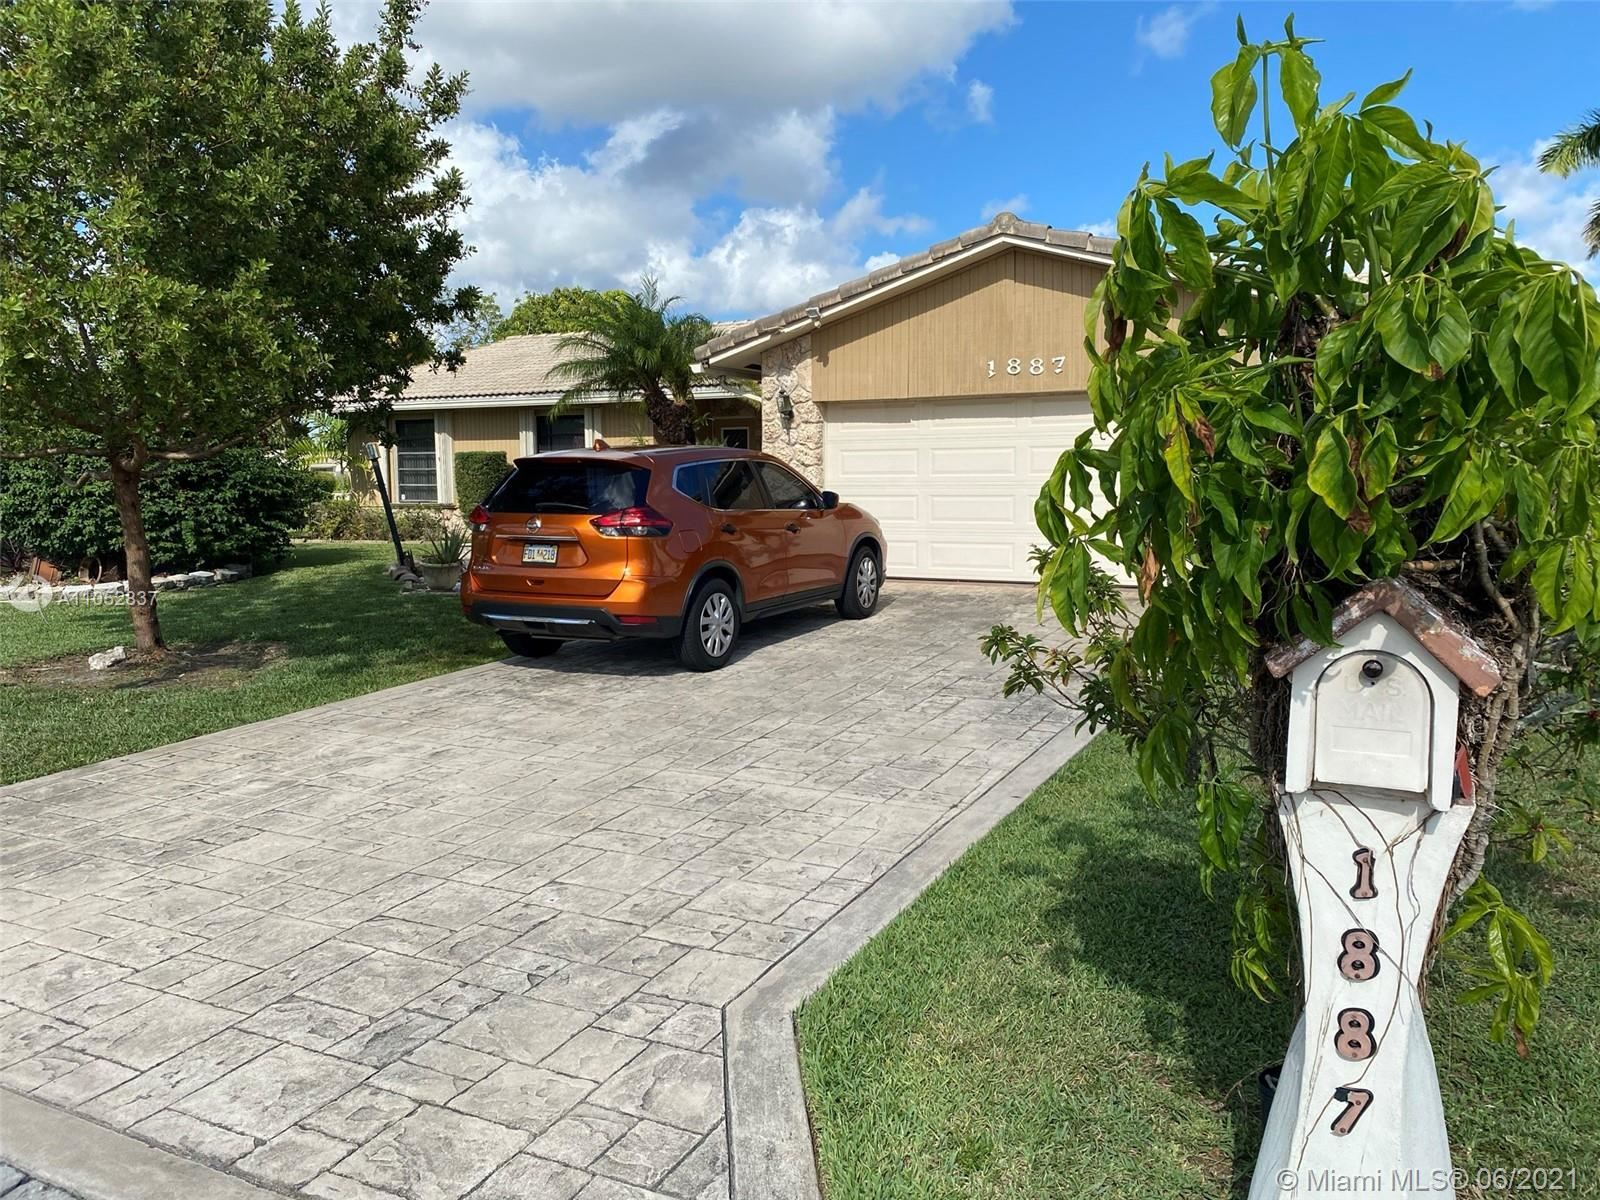 1887 NW 85th Ln, Coral Springs, FL 33071 - #: A11052837